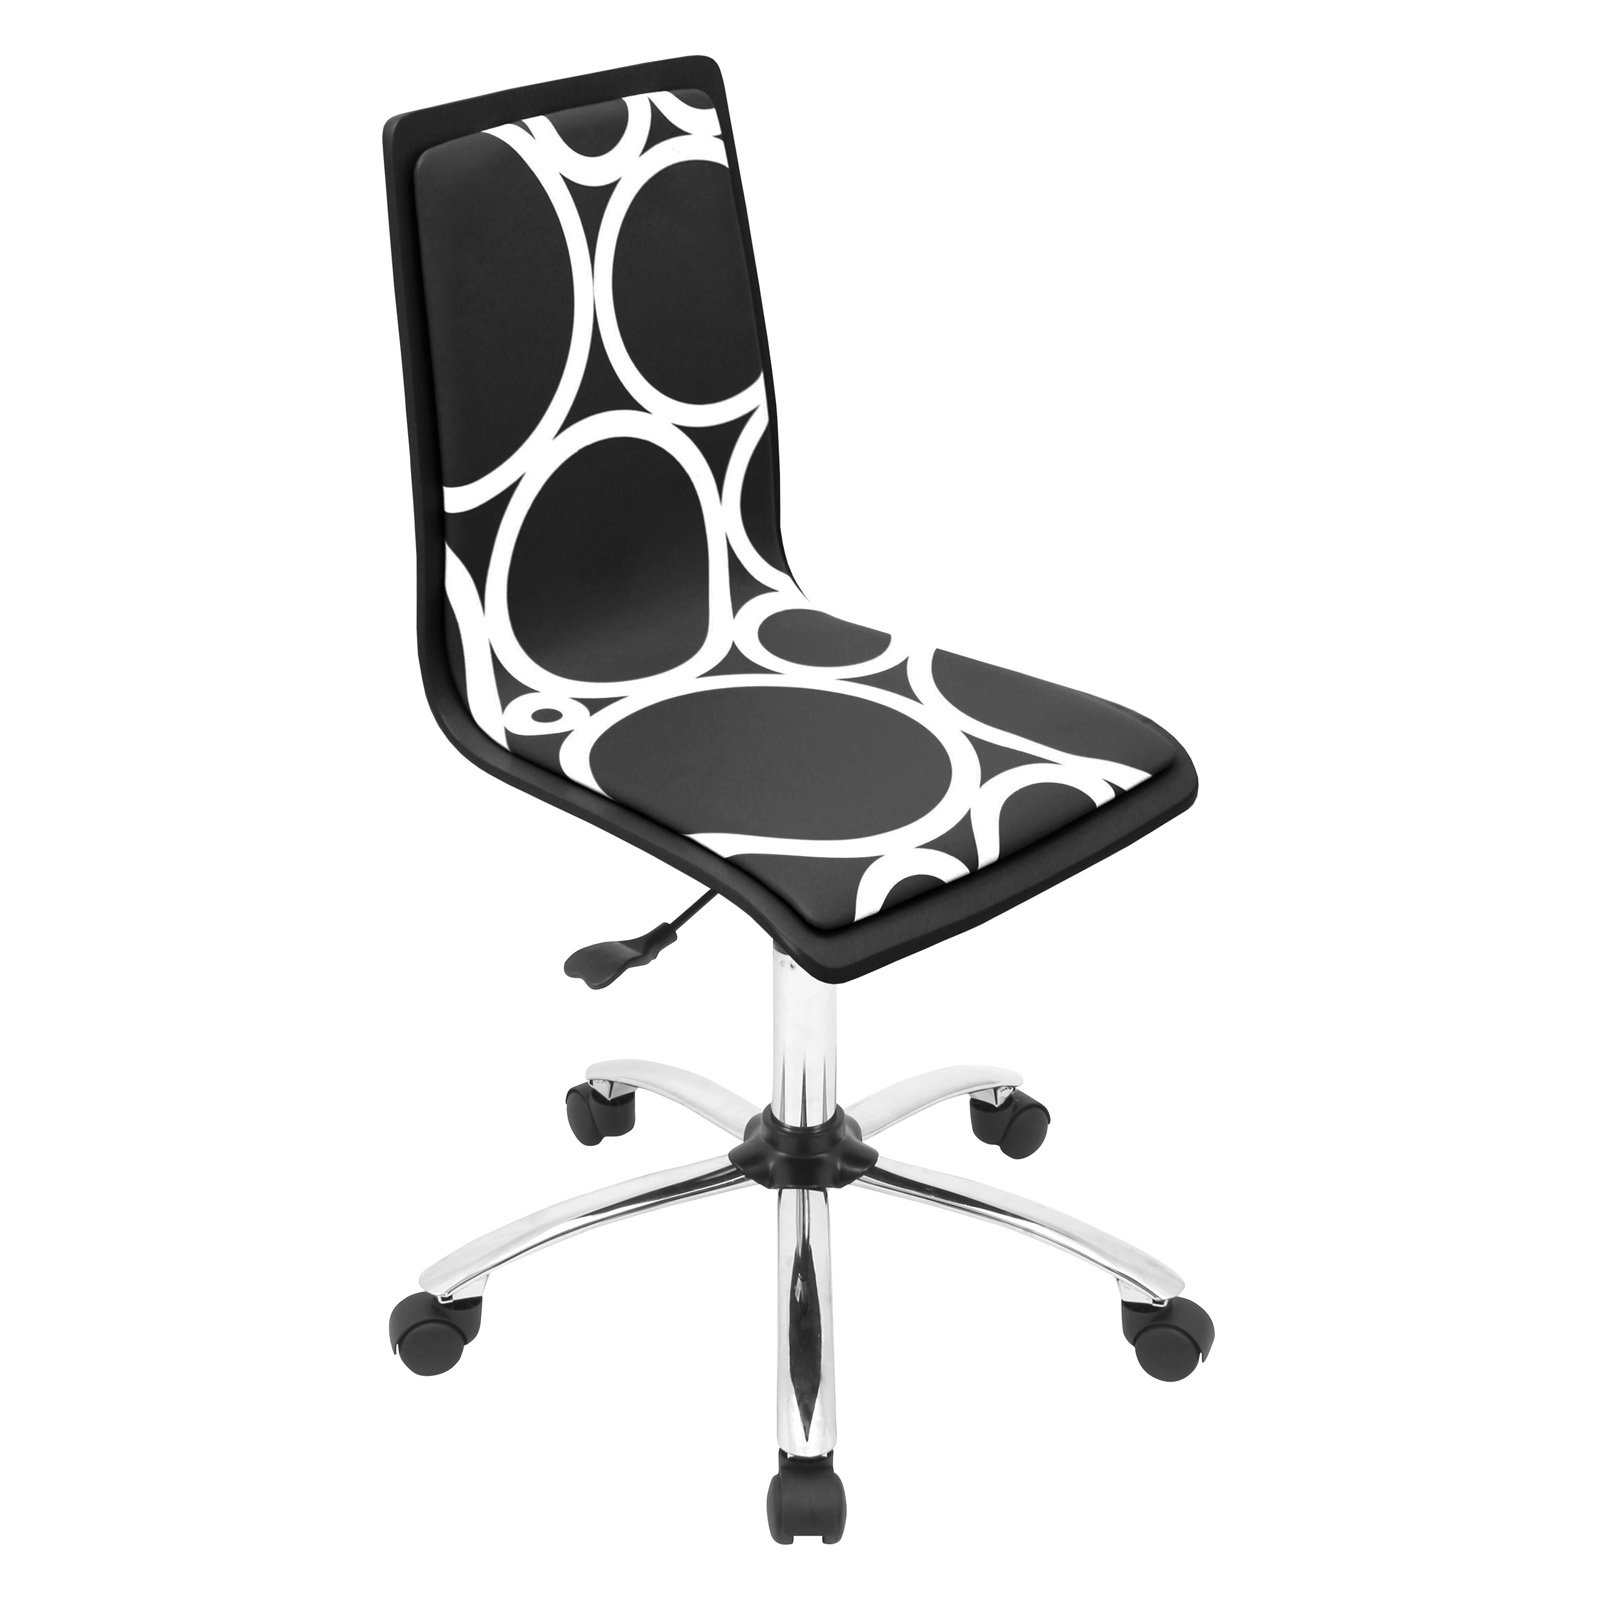 LumiSource Printed Circles Computer Chair - Black